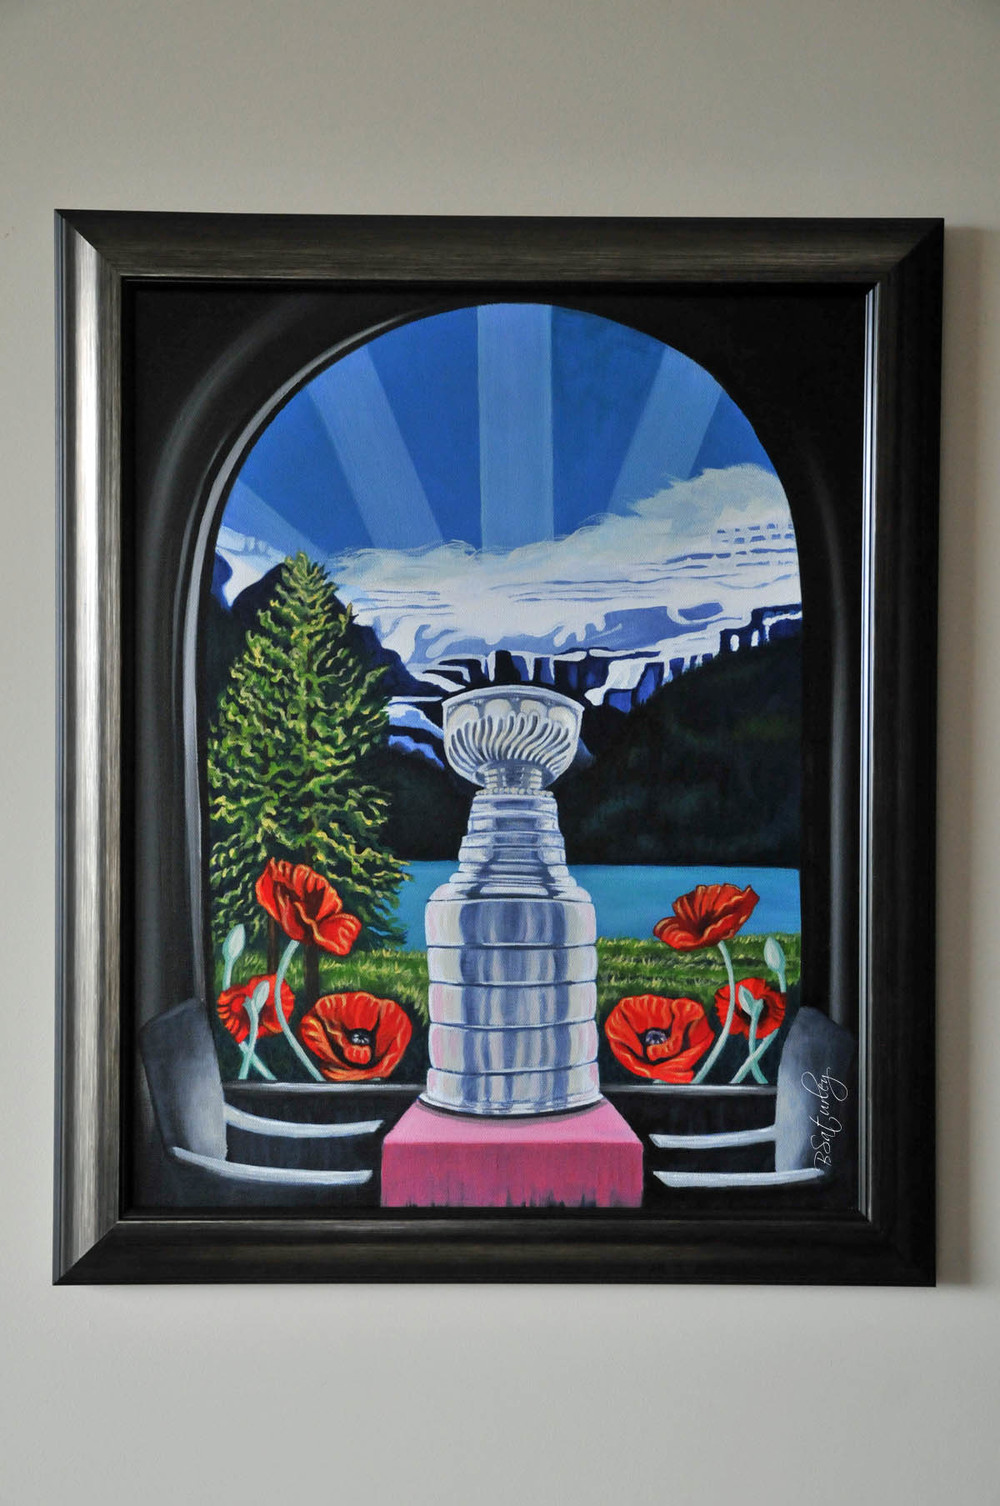 Stanley cup at Lake Louise by Brandy Saturley.